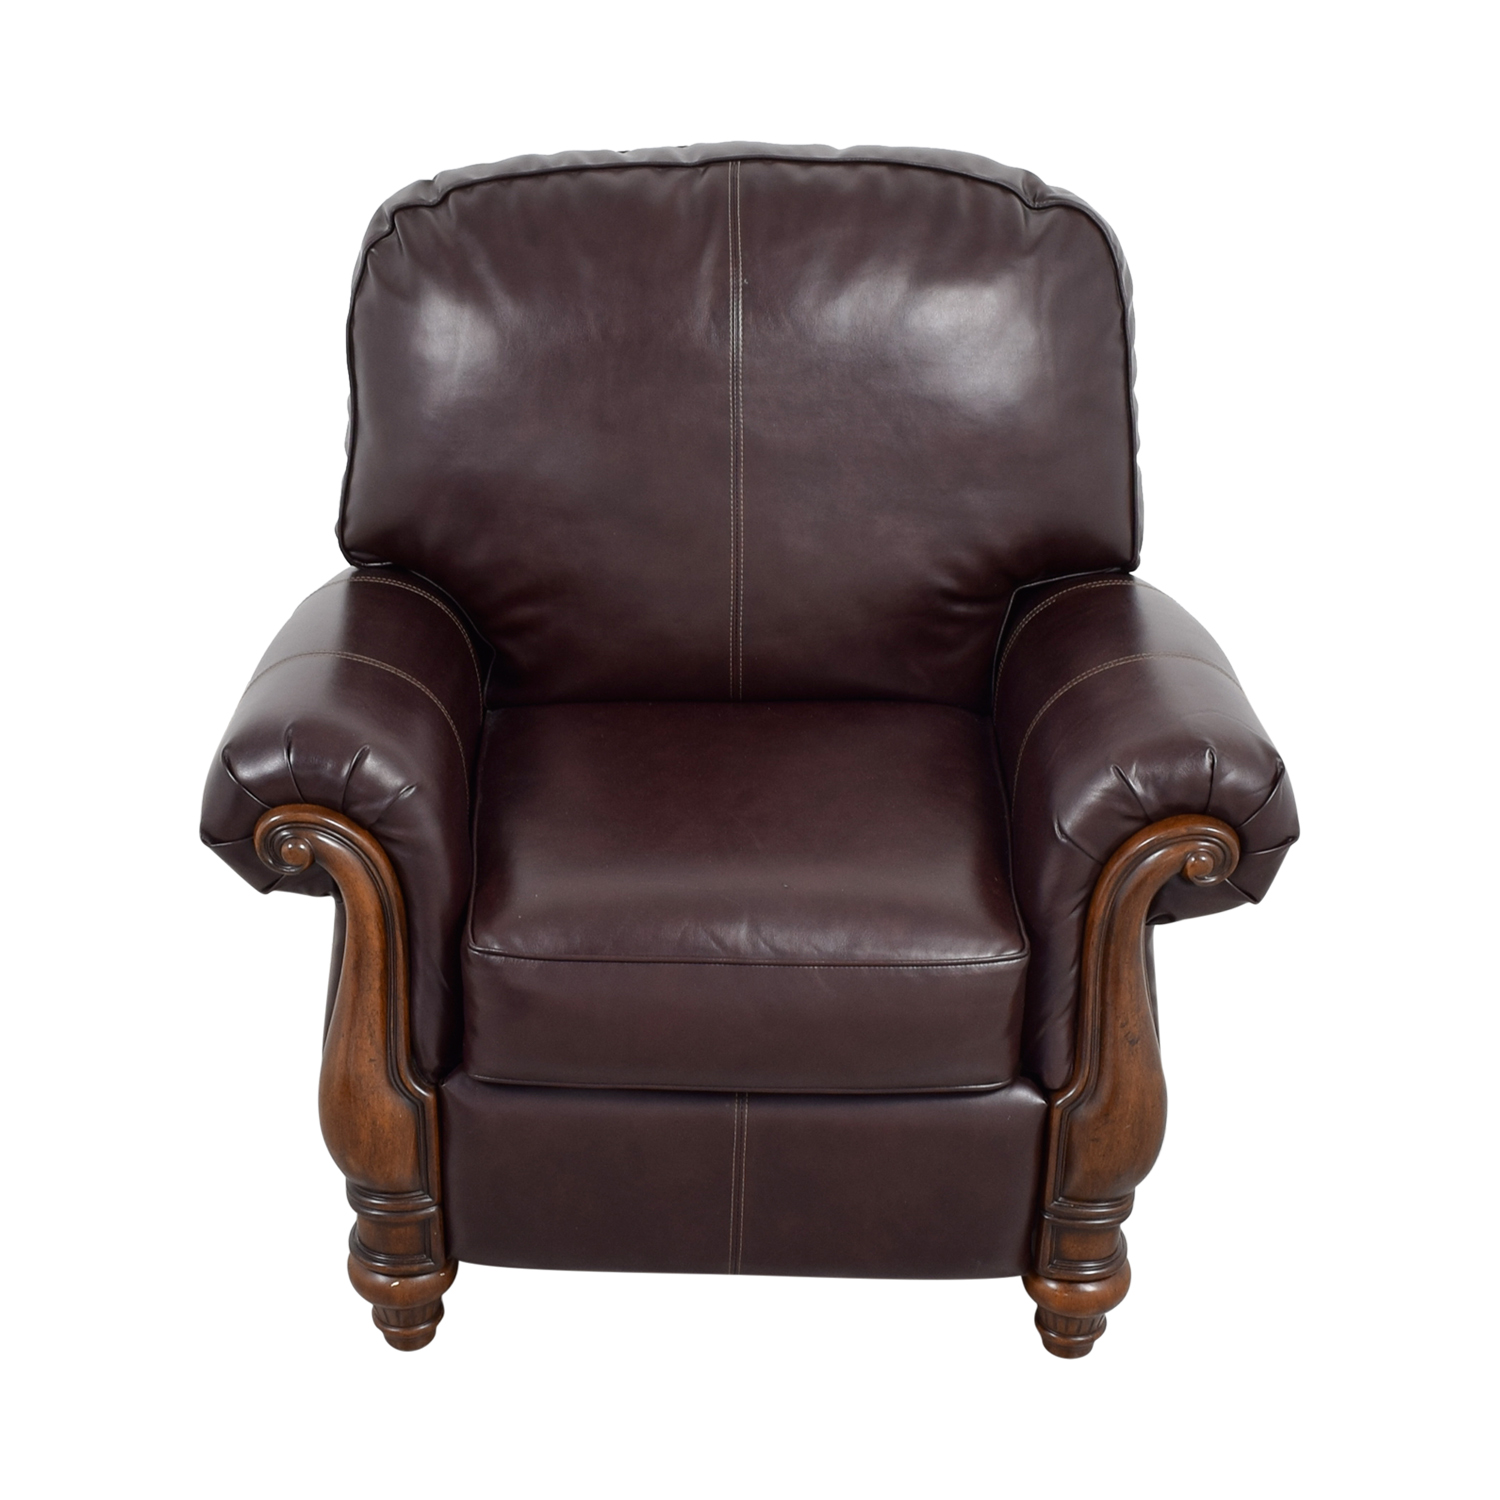 Ashley Furniture Ashley Furniture Brown Arm Chair Accent Chairs